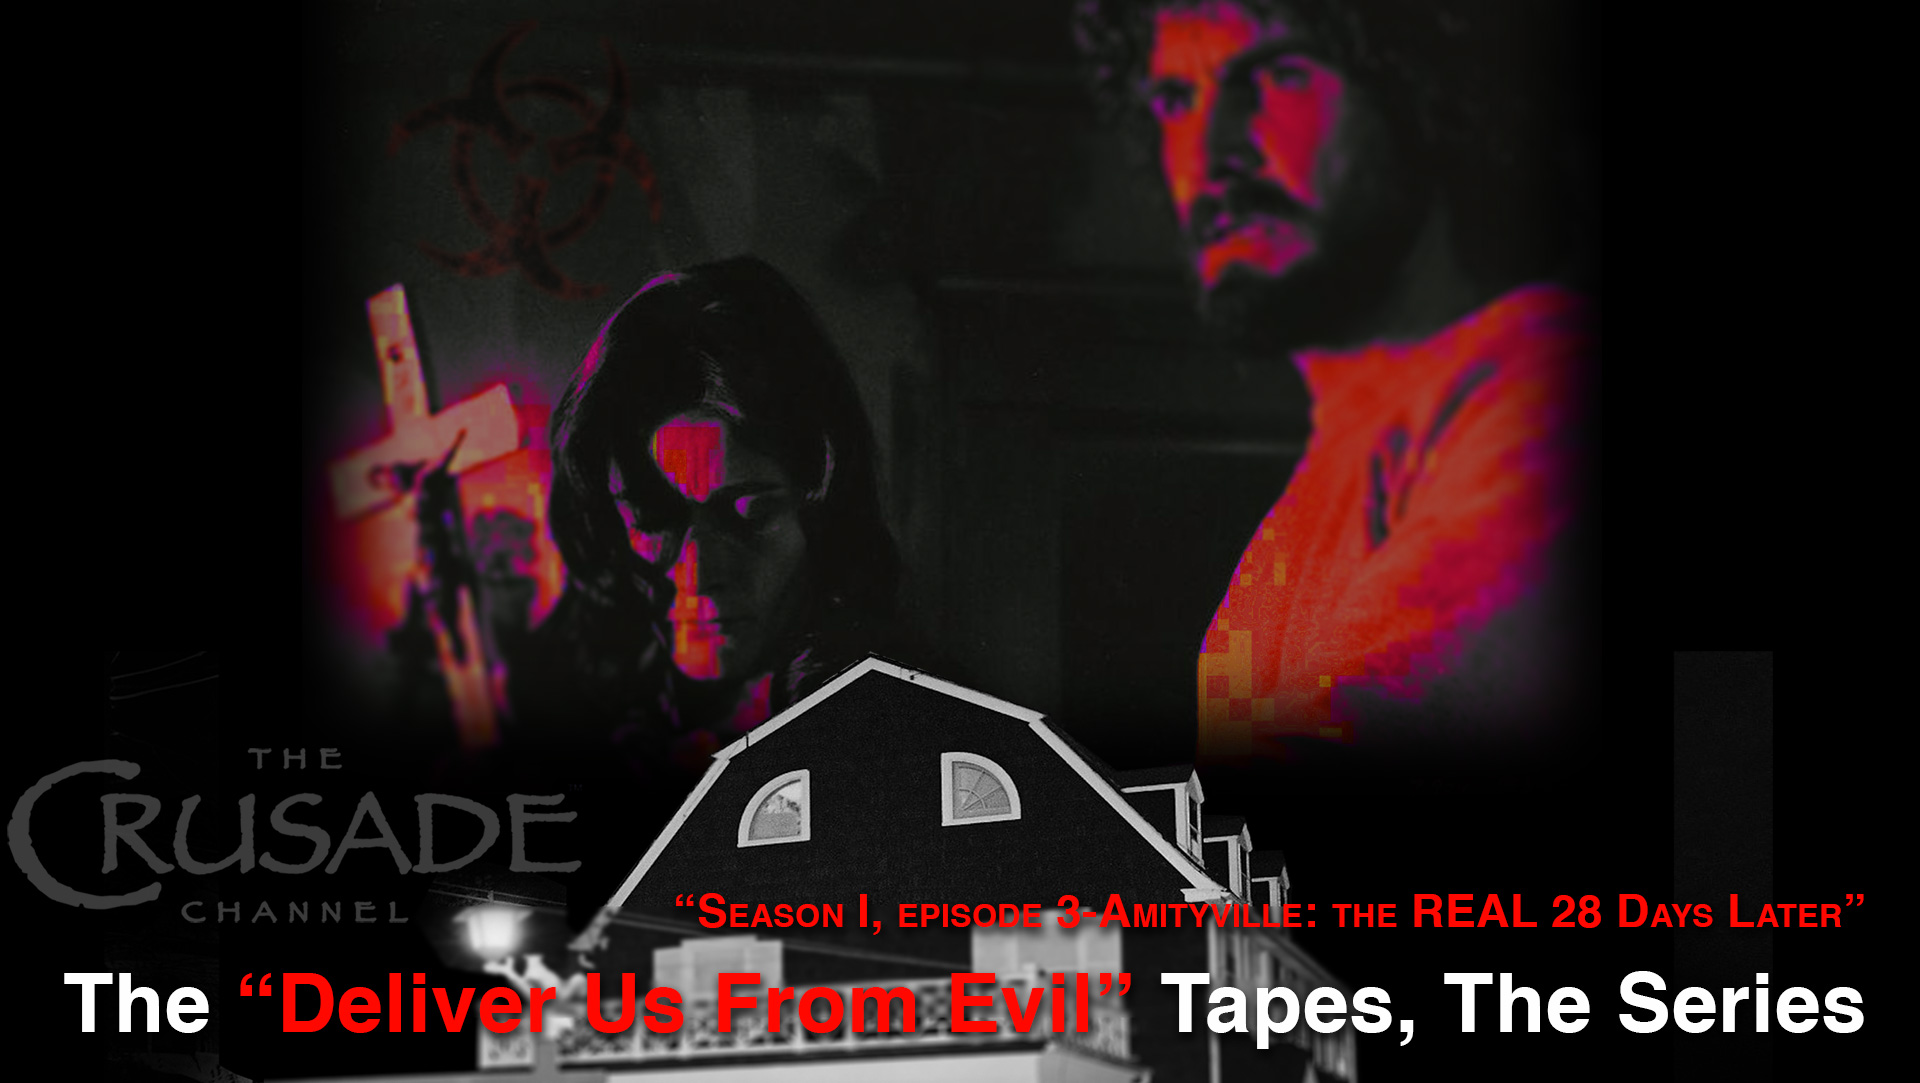 """Download Deliver Us From Evil Tapes-S1 E3 """"Amityville: The REAL 28 Days Later"""" - FREE!"""